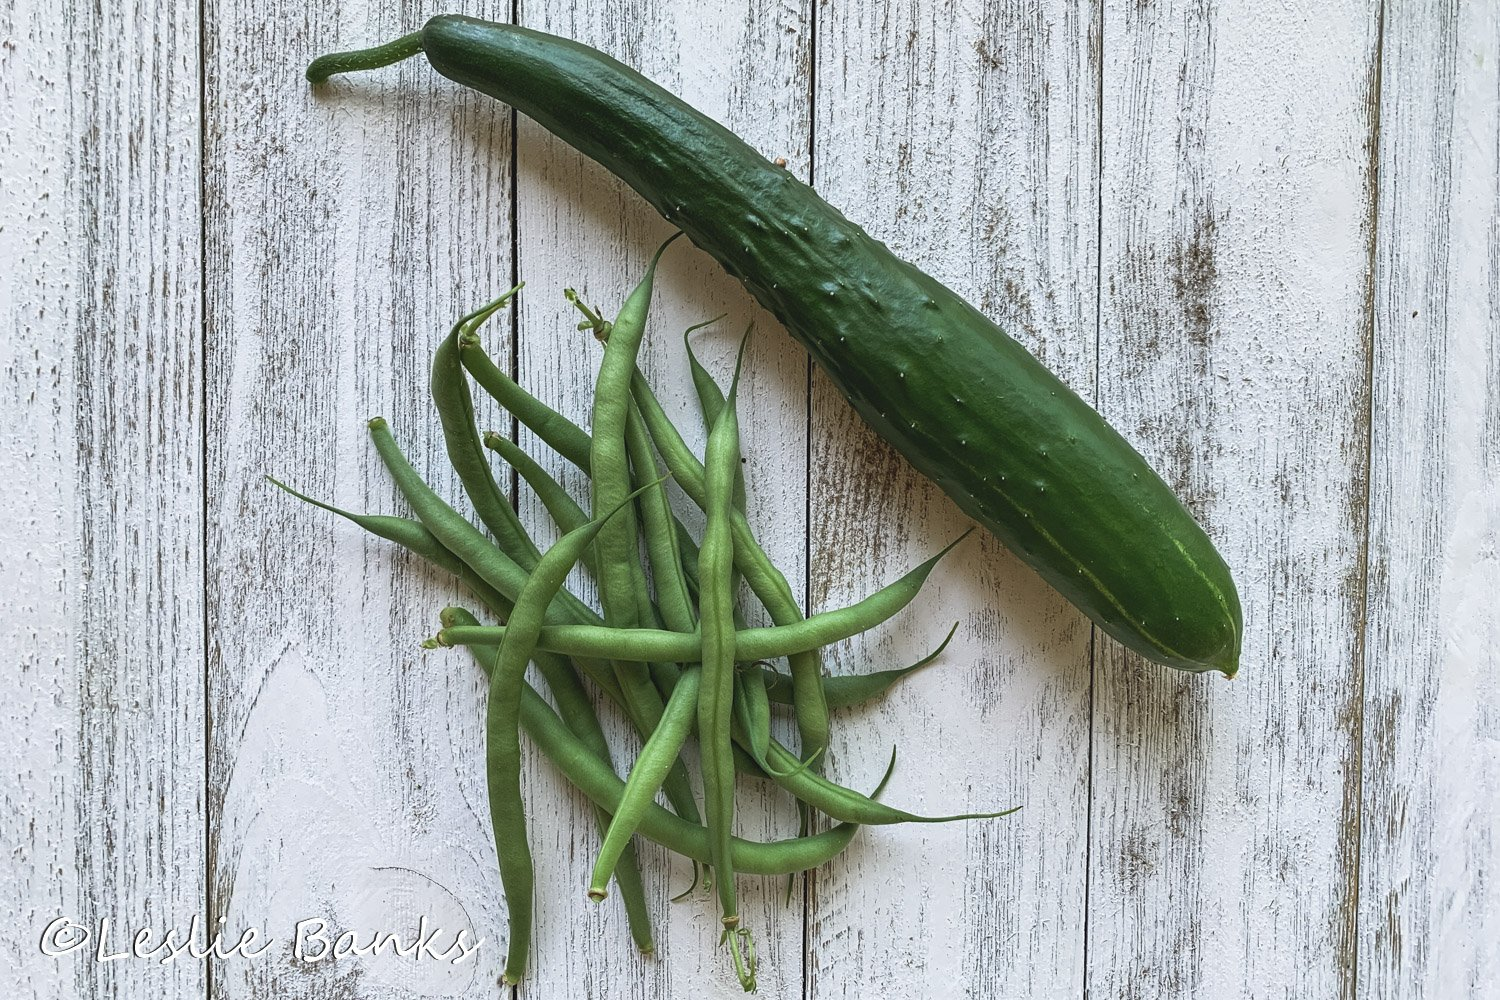 Cucumber and Bean Harvest